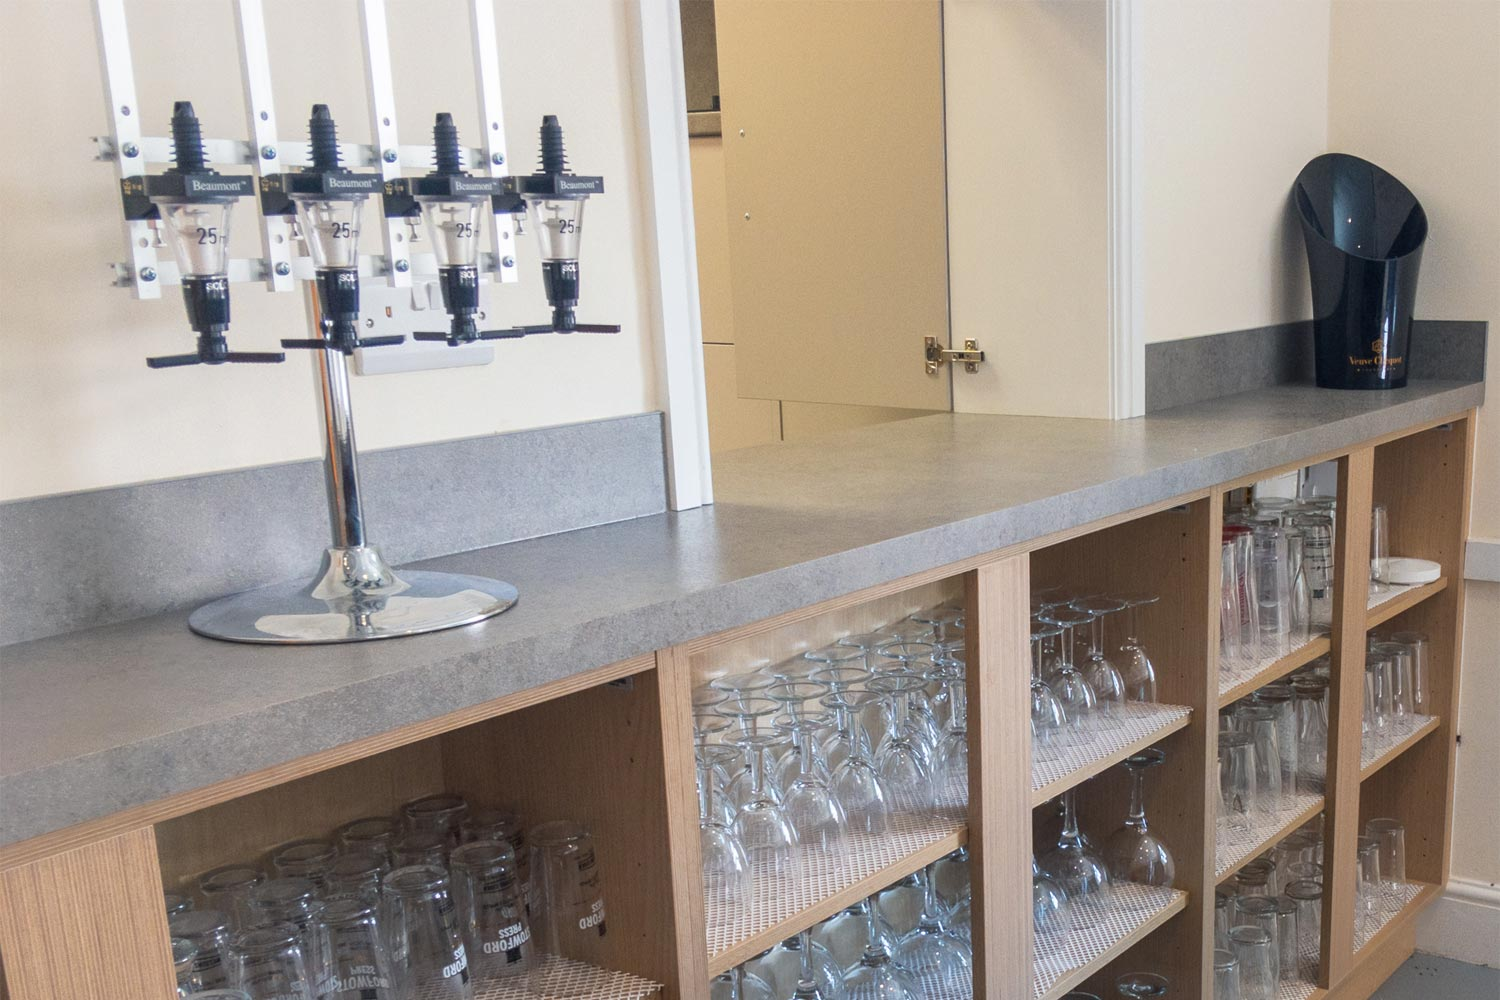 View of bar area with optic stand and access hatch to kitchen